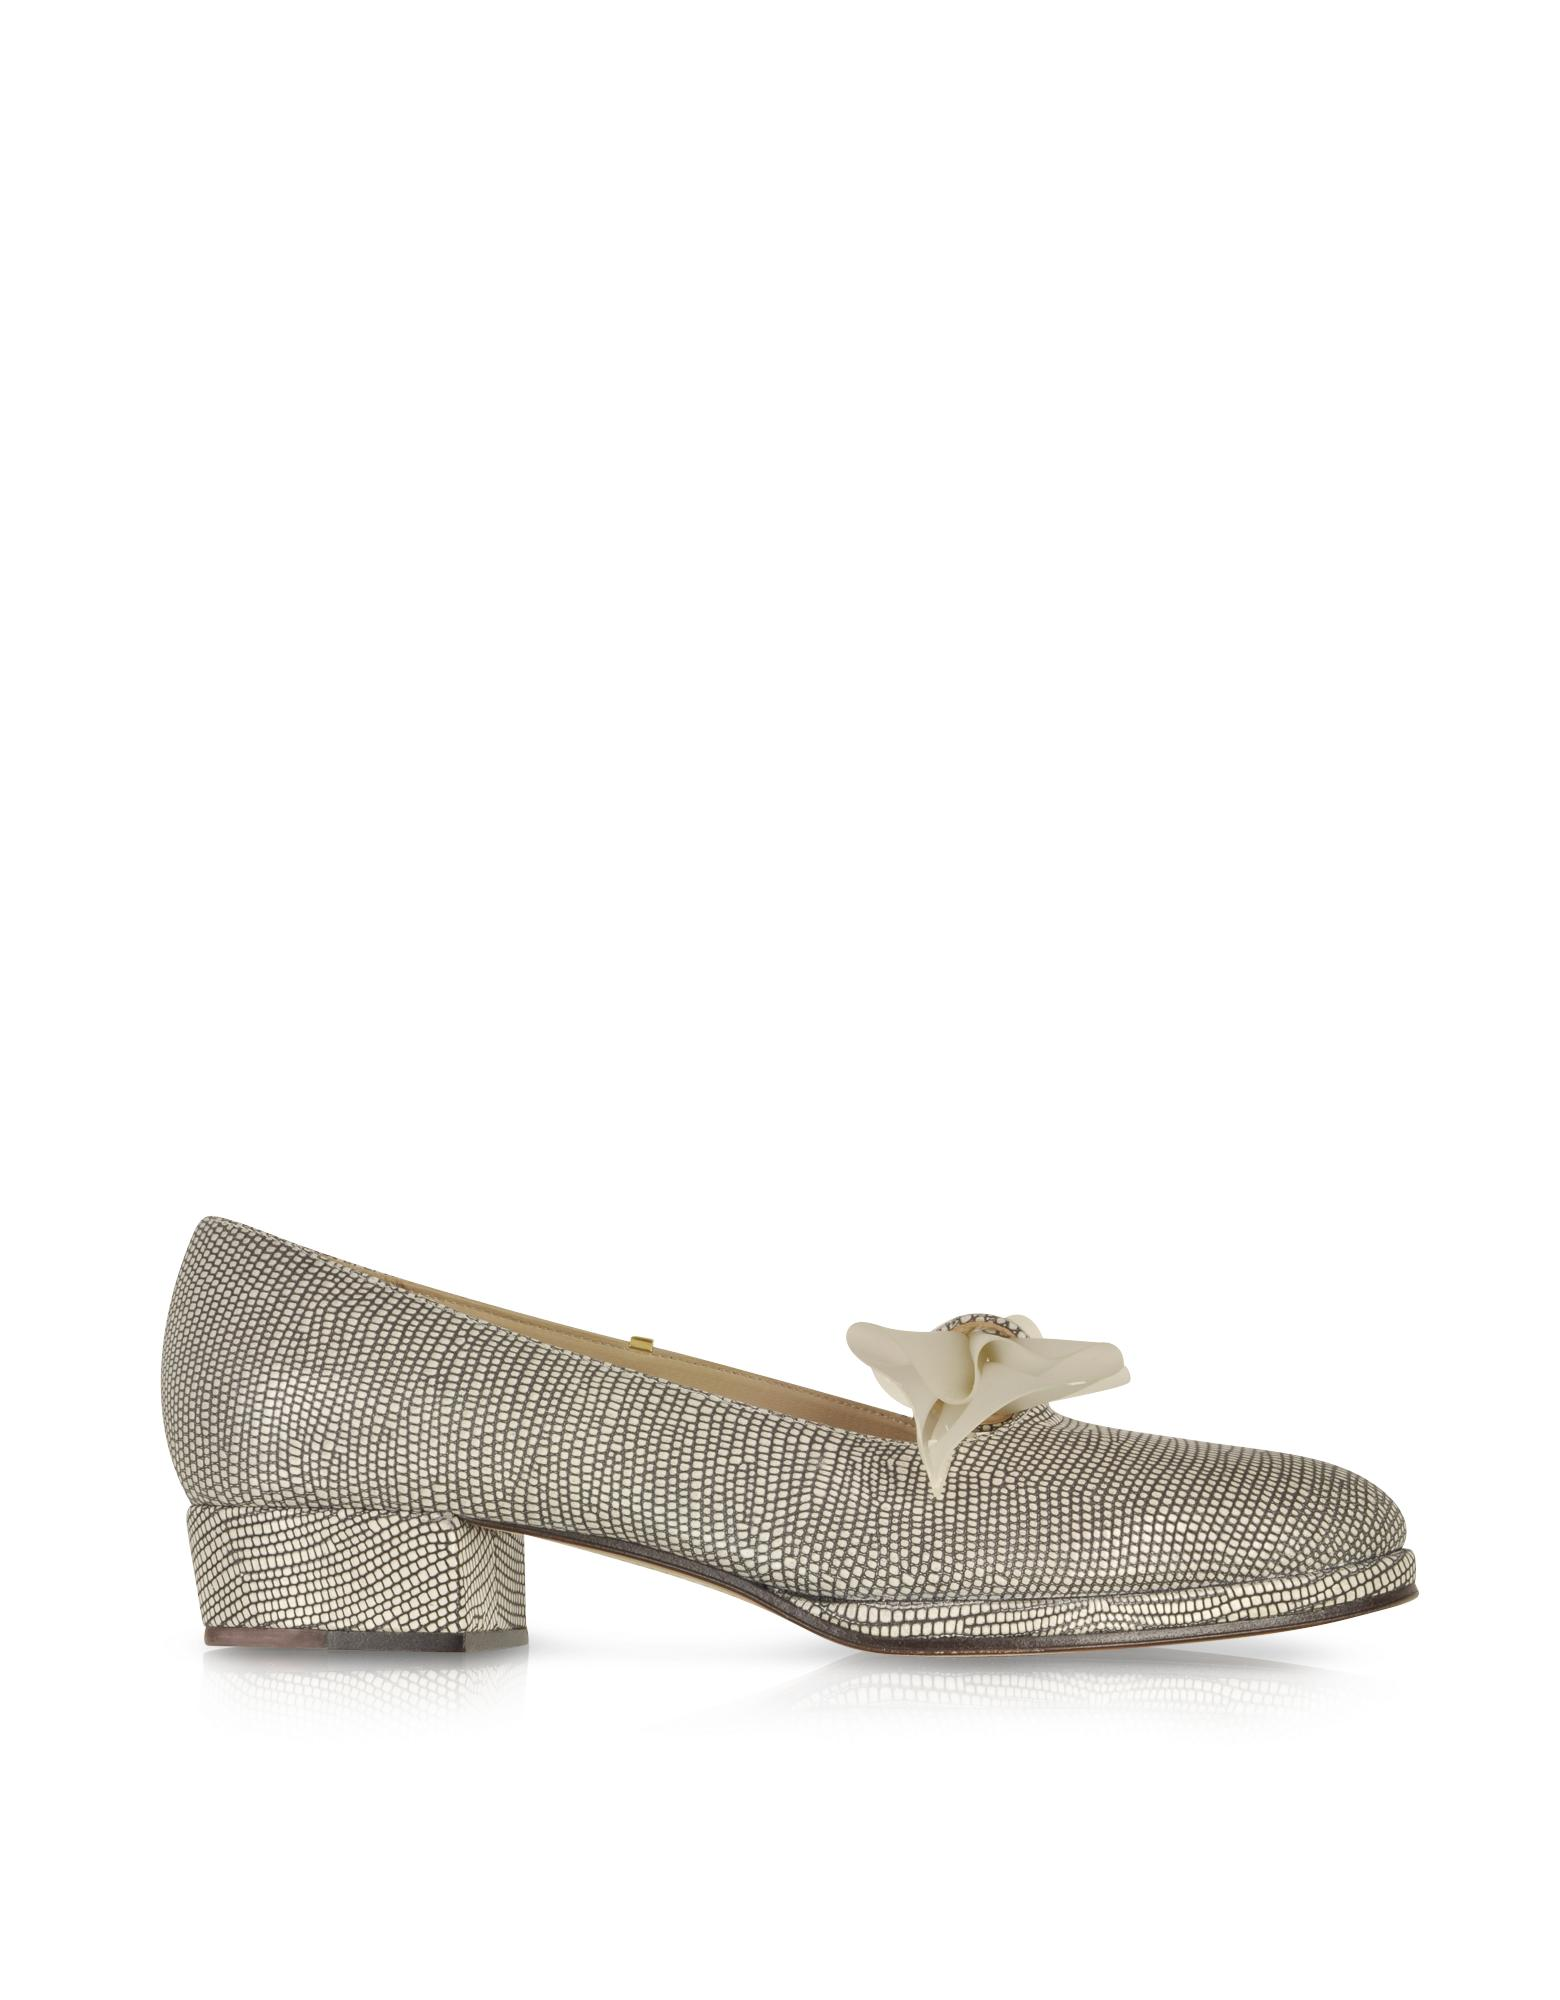 Ferriday Lizard Embossed Leather Loafer - Zoe Lee